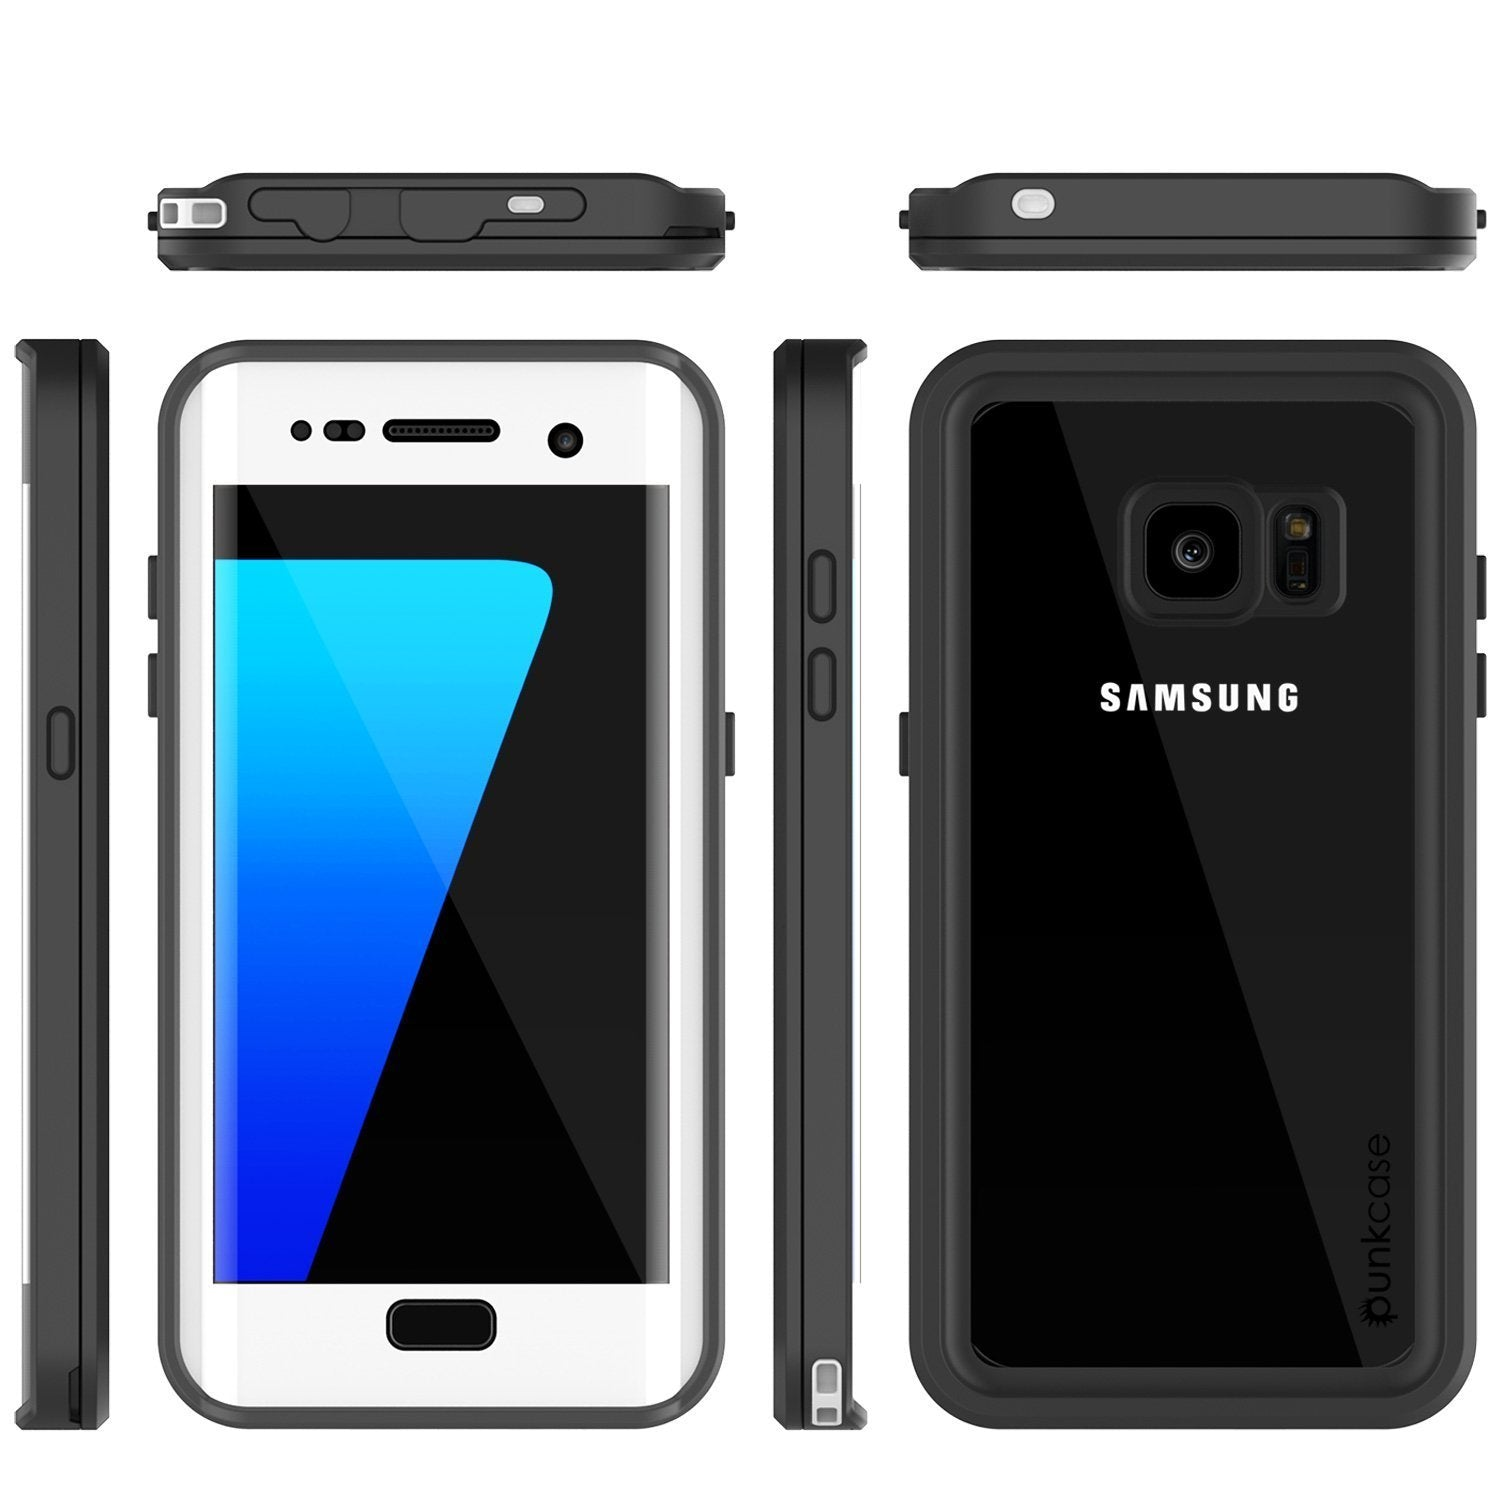 Galaxy S7 Edge Waterproof Case, Punkcase [Extreme Series] [Slim Fit] Armor Cover W/ Built In Screen Protector [WHITE]